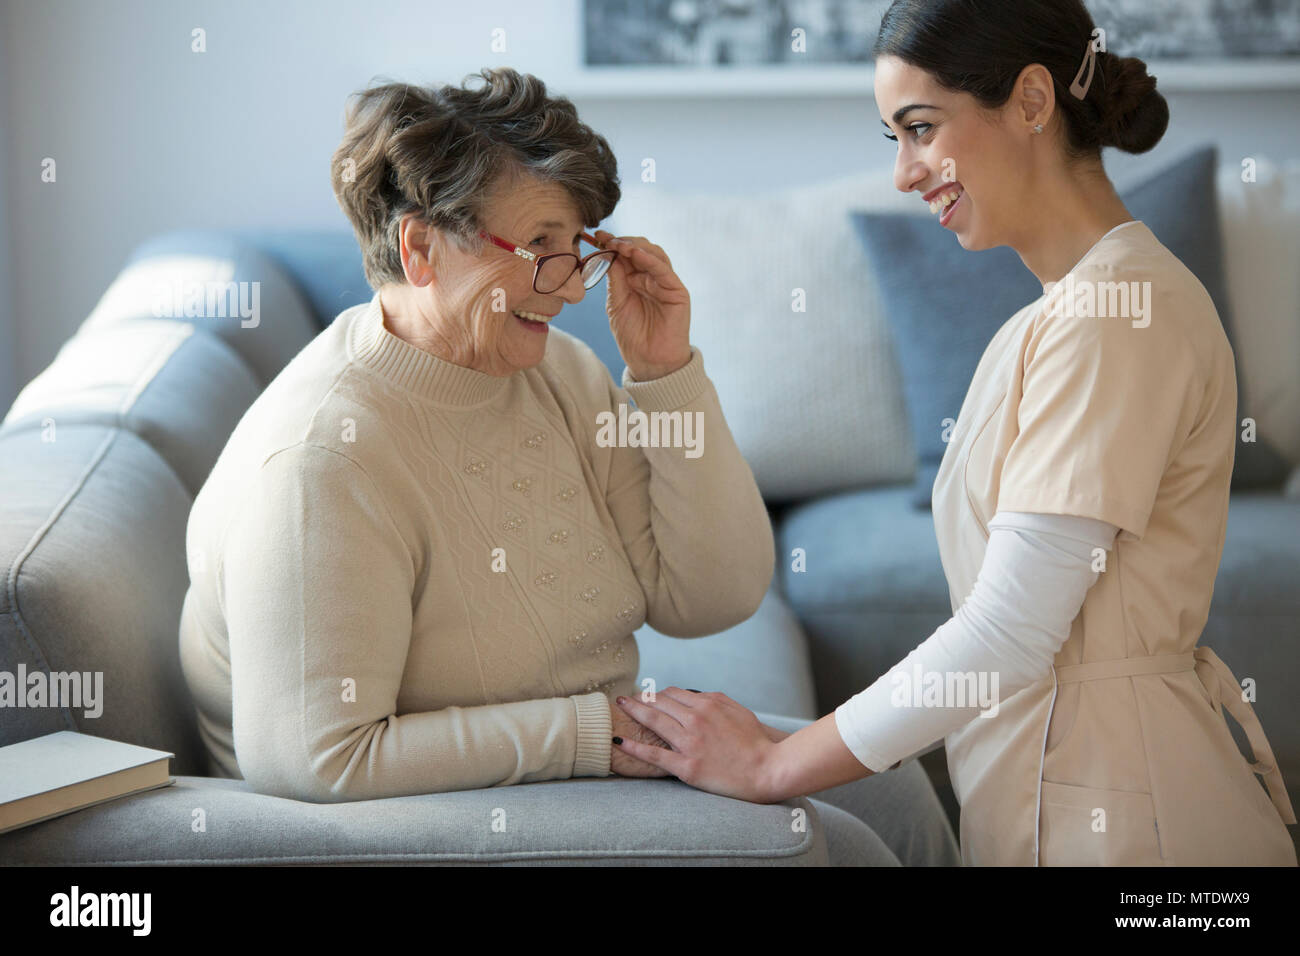 A tender caregiver kneeling down and facing a smiling older woman who is sitting on a sofa and holding her glasses - Stock Image